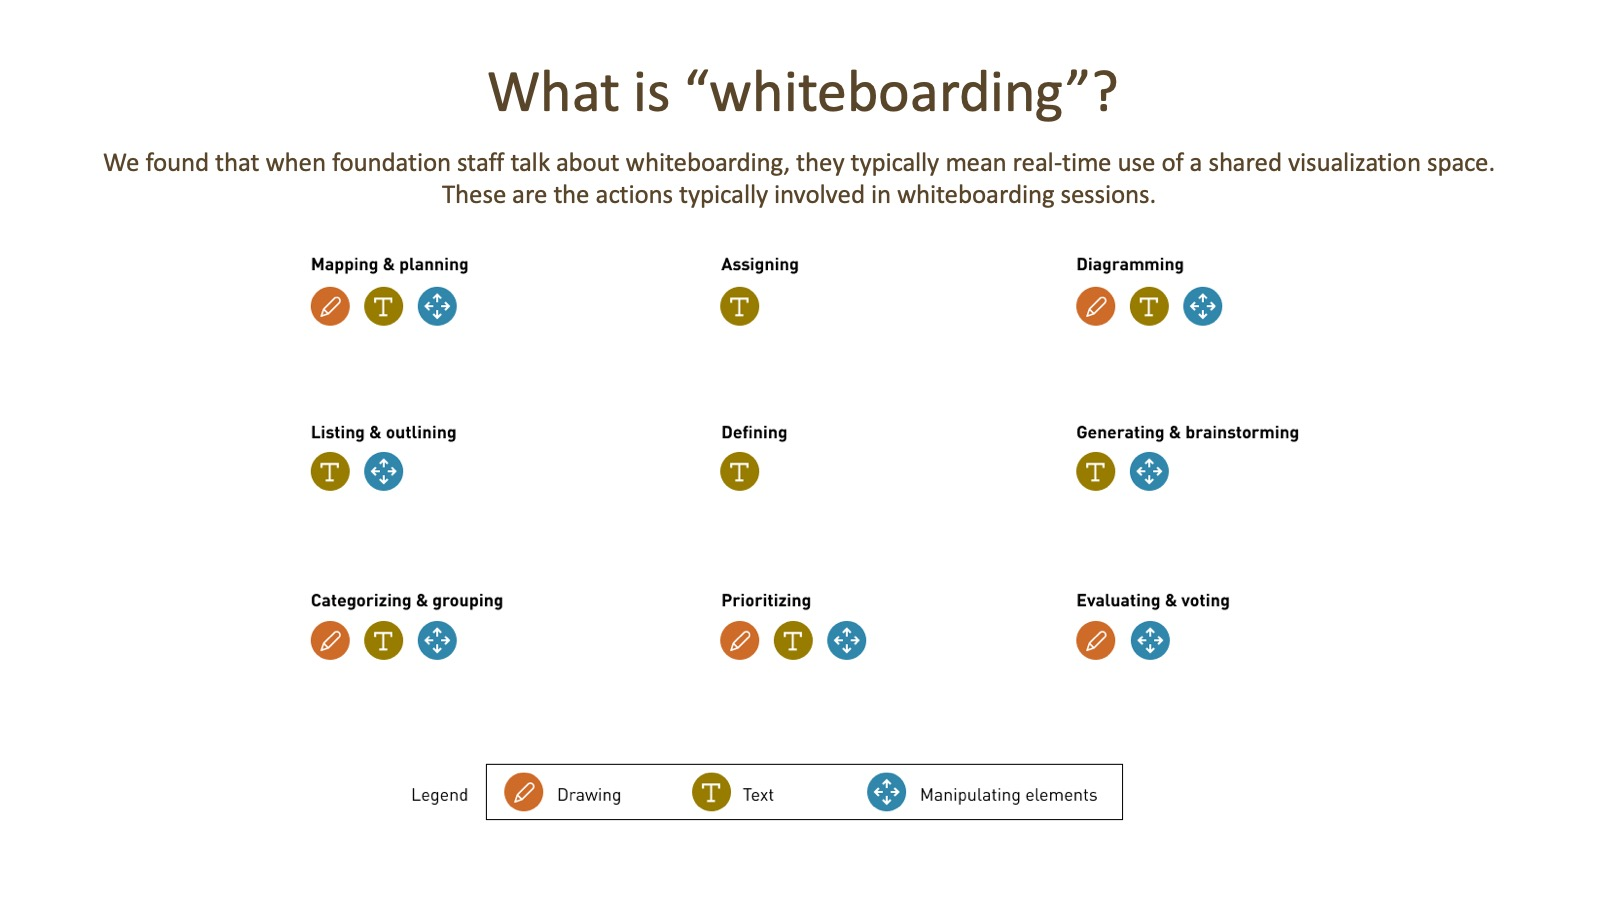 What is whiteboarding?